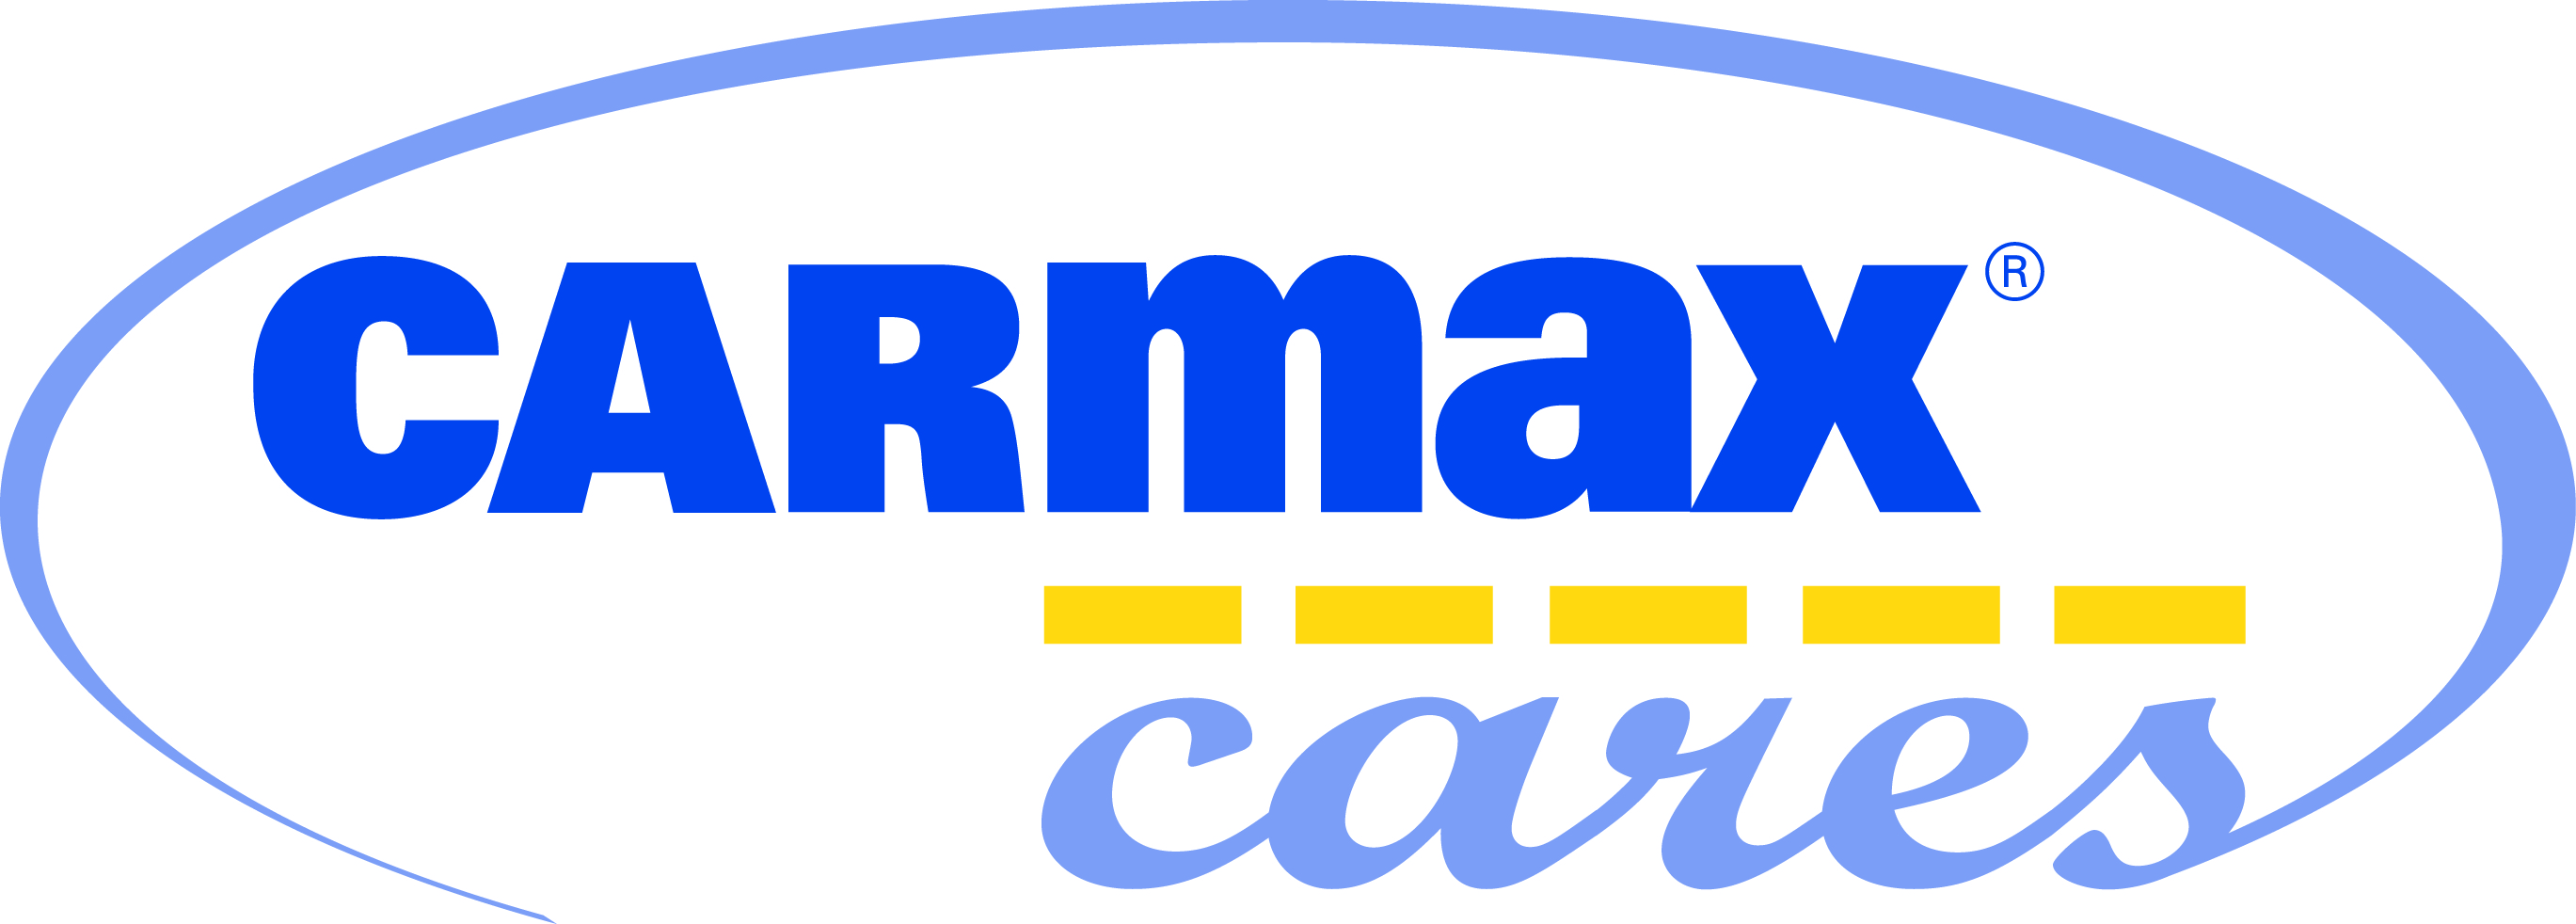 Image result for carmax cares logo